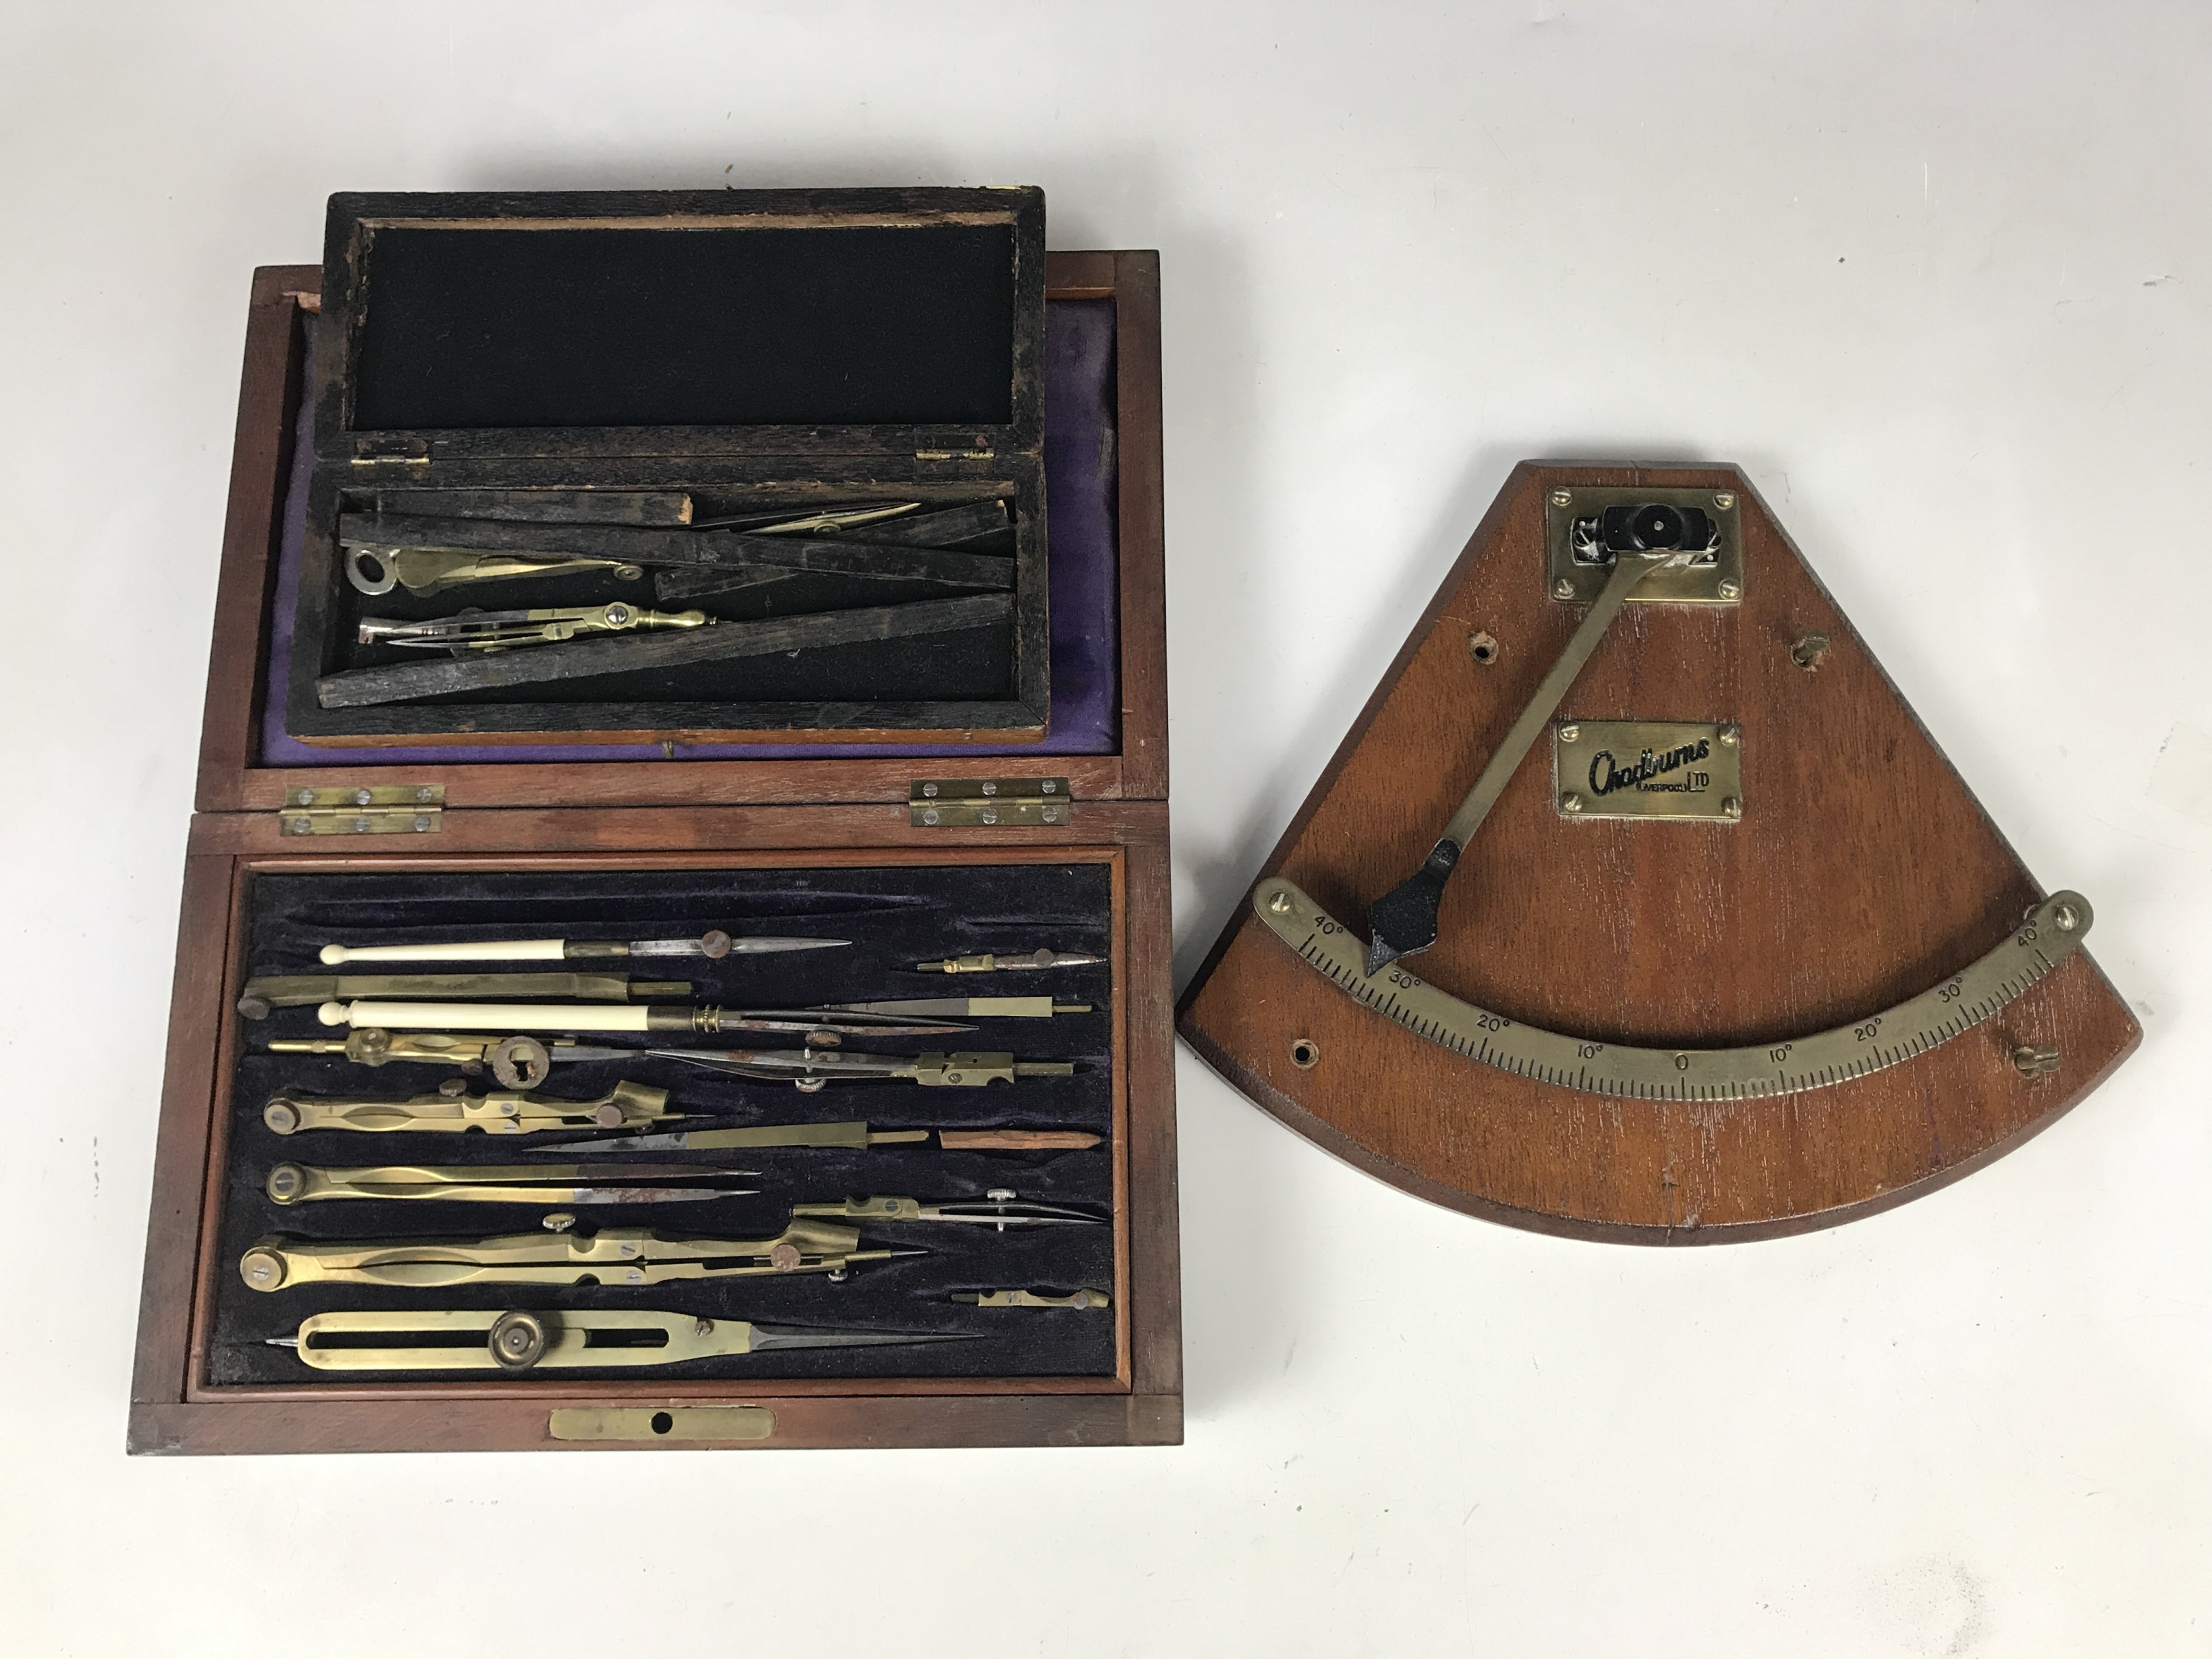 Lot 24 - A Victorian mahogany cased drawing instrument set, together with one other smaller example, and a